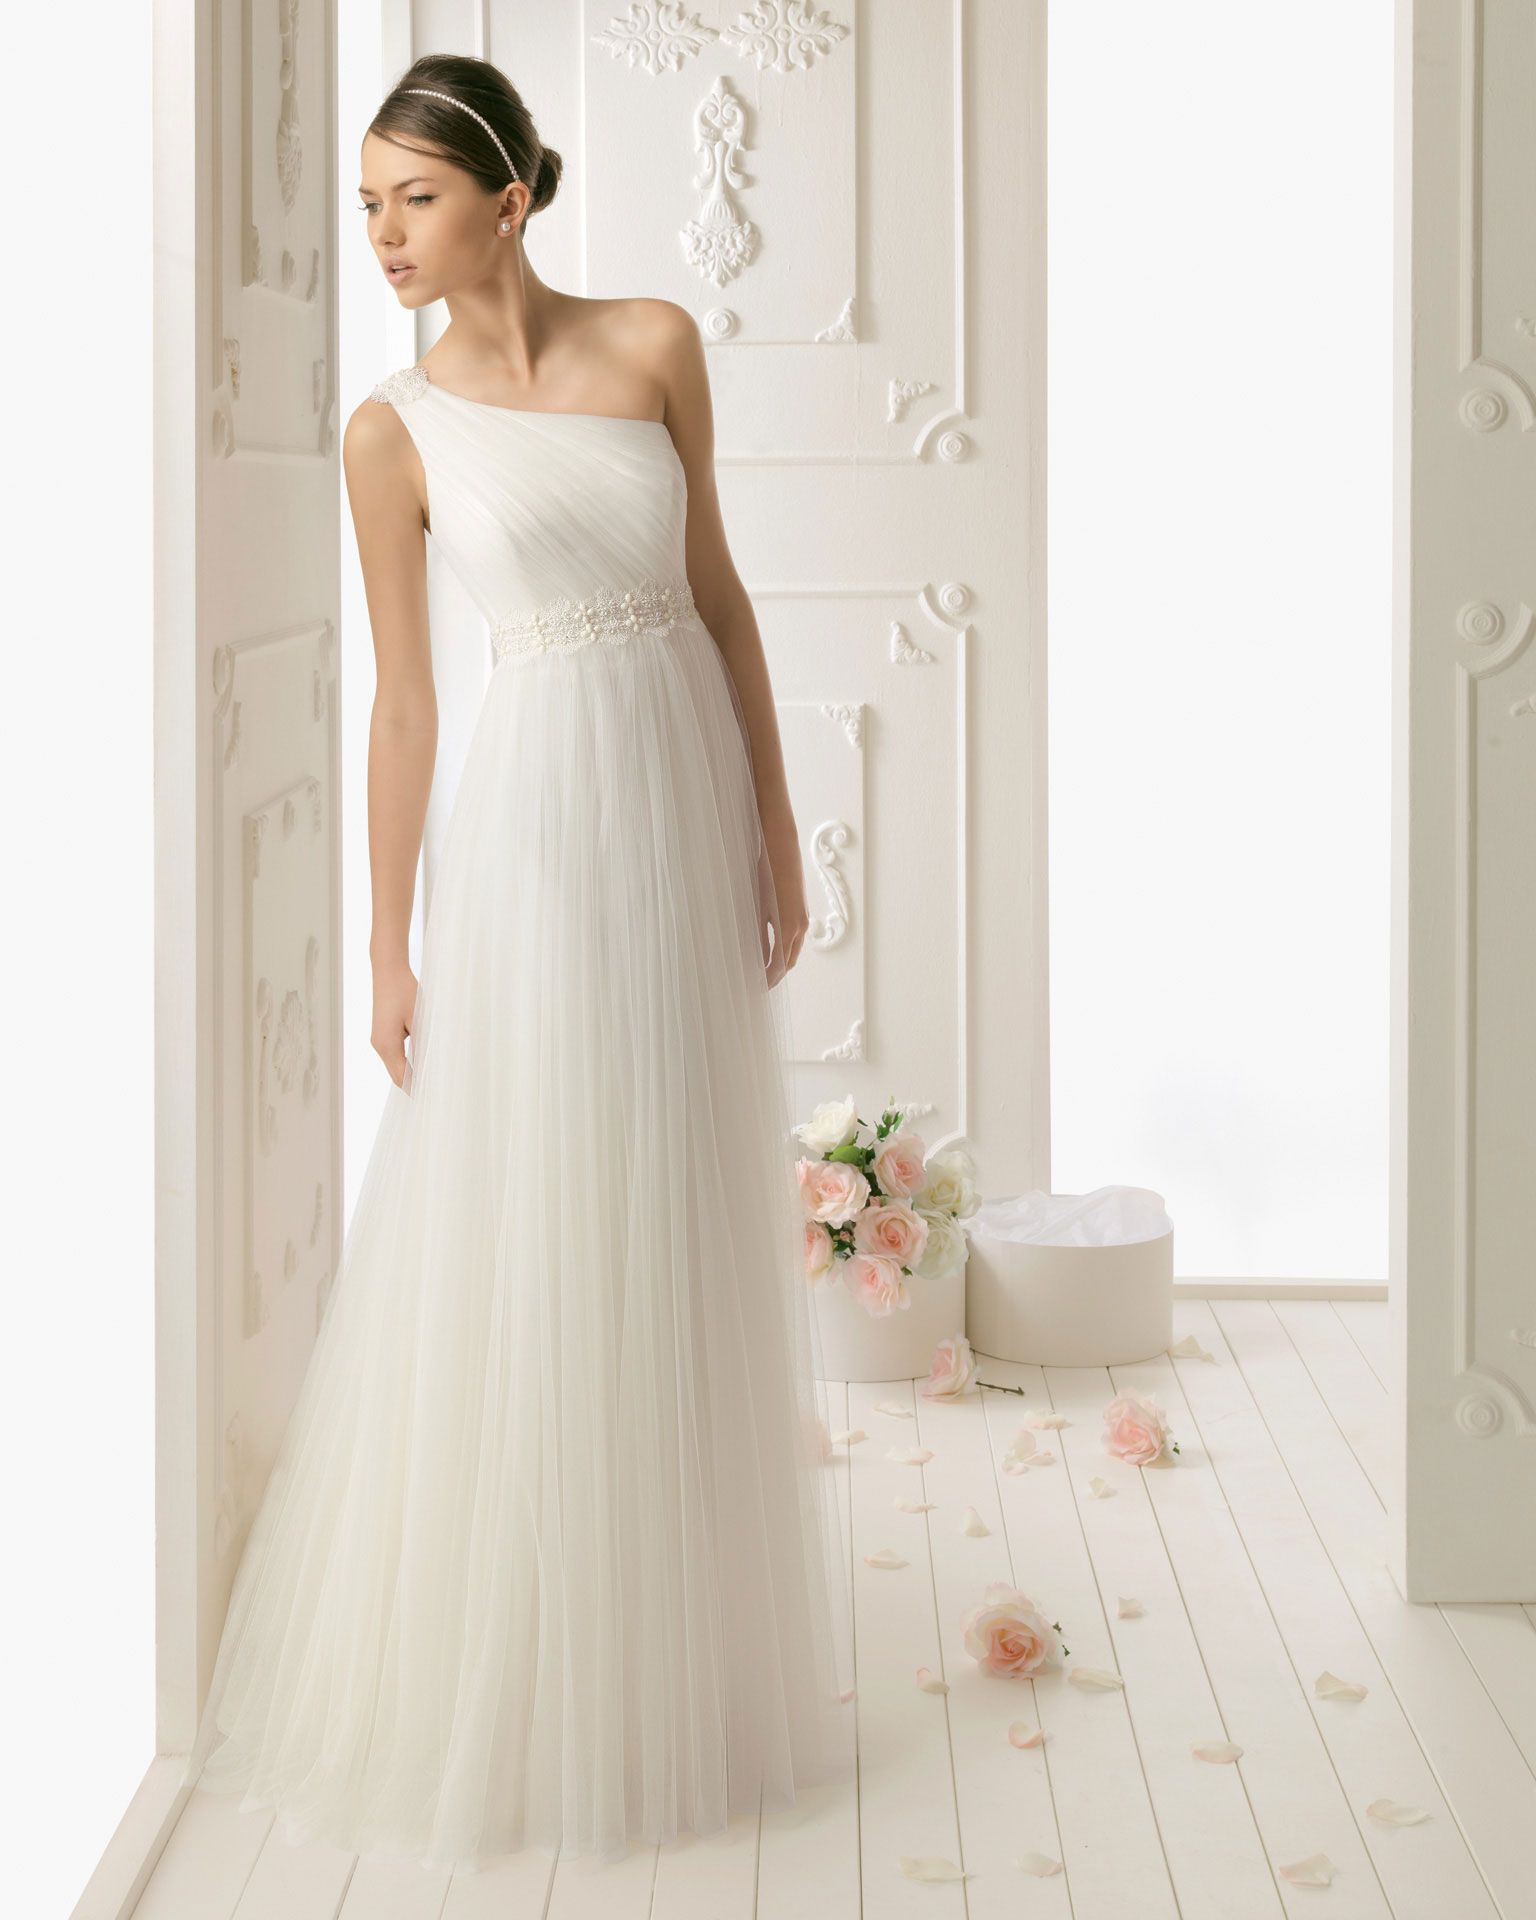 Ecru wedding dress  vestido para boda civil  Buscar con Google  vestidos  Pinterest